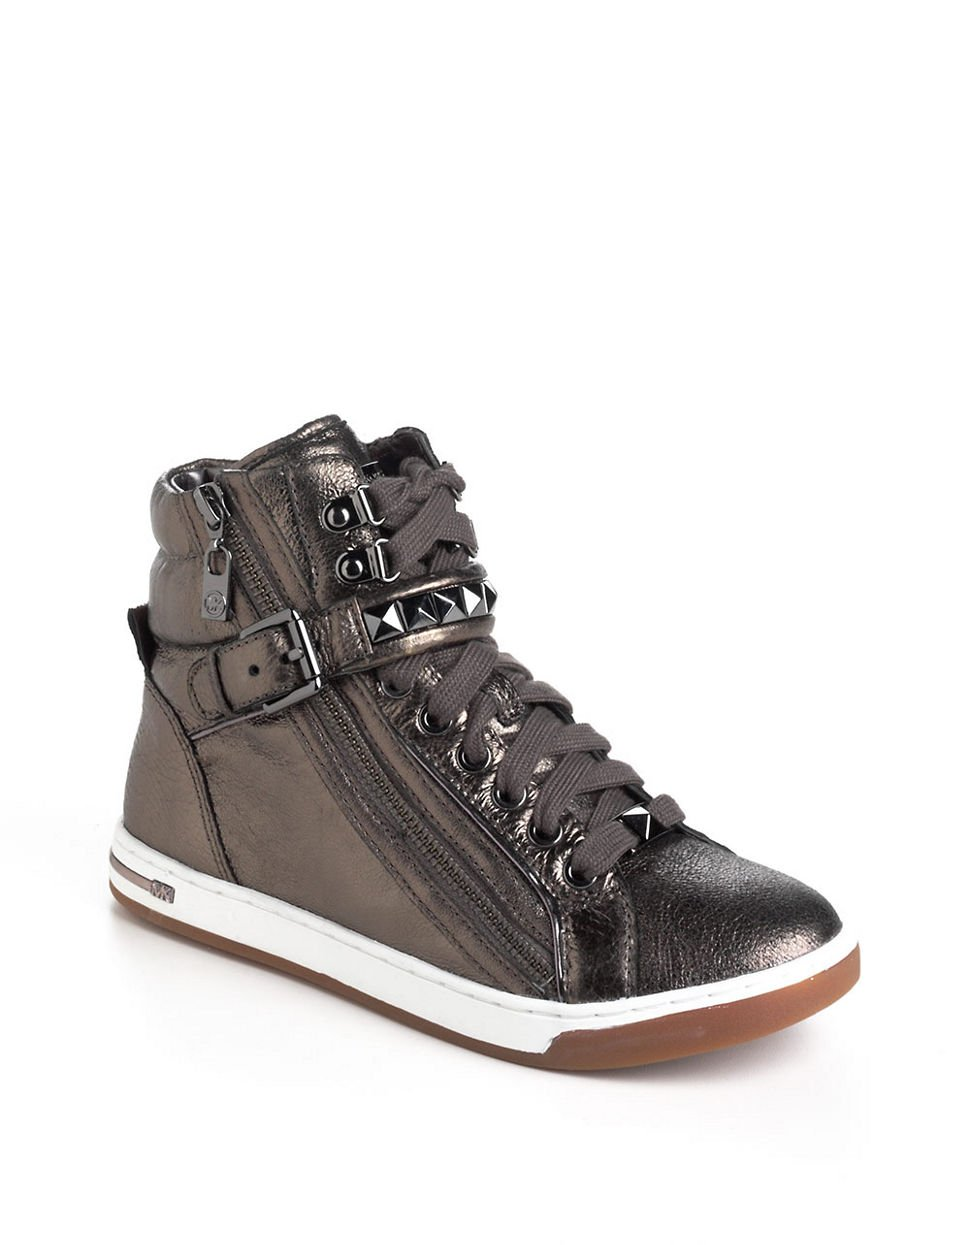 michael michael kors glam studded leather high top sneakers in silver lyst. Black Bedroom Furniture Sets. Home Design Ideas